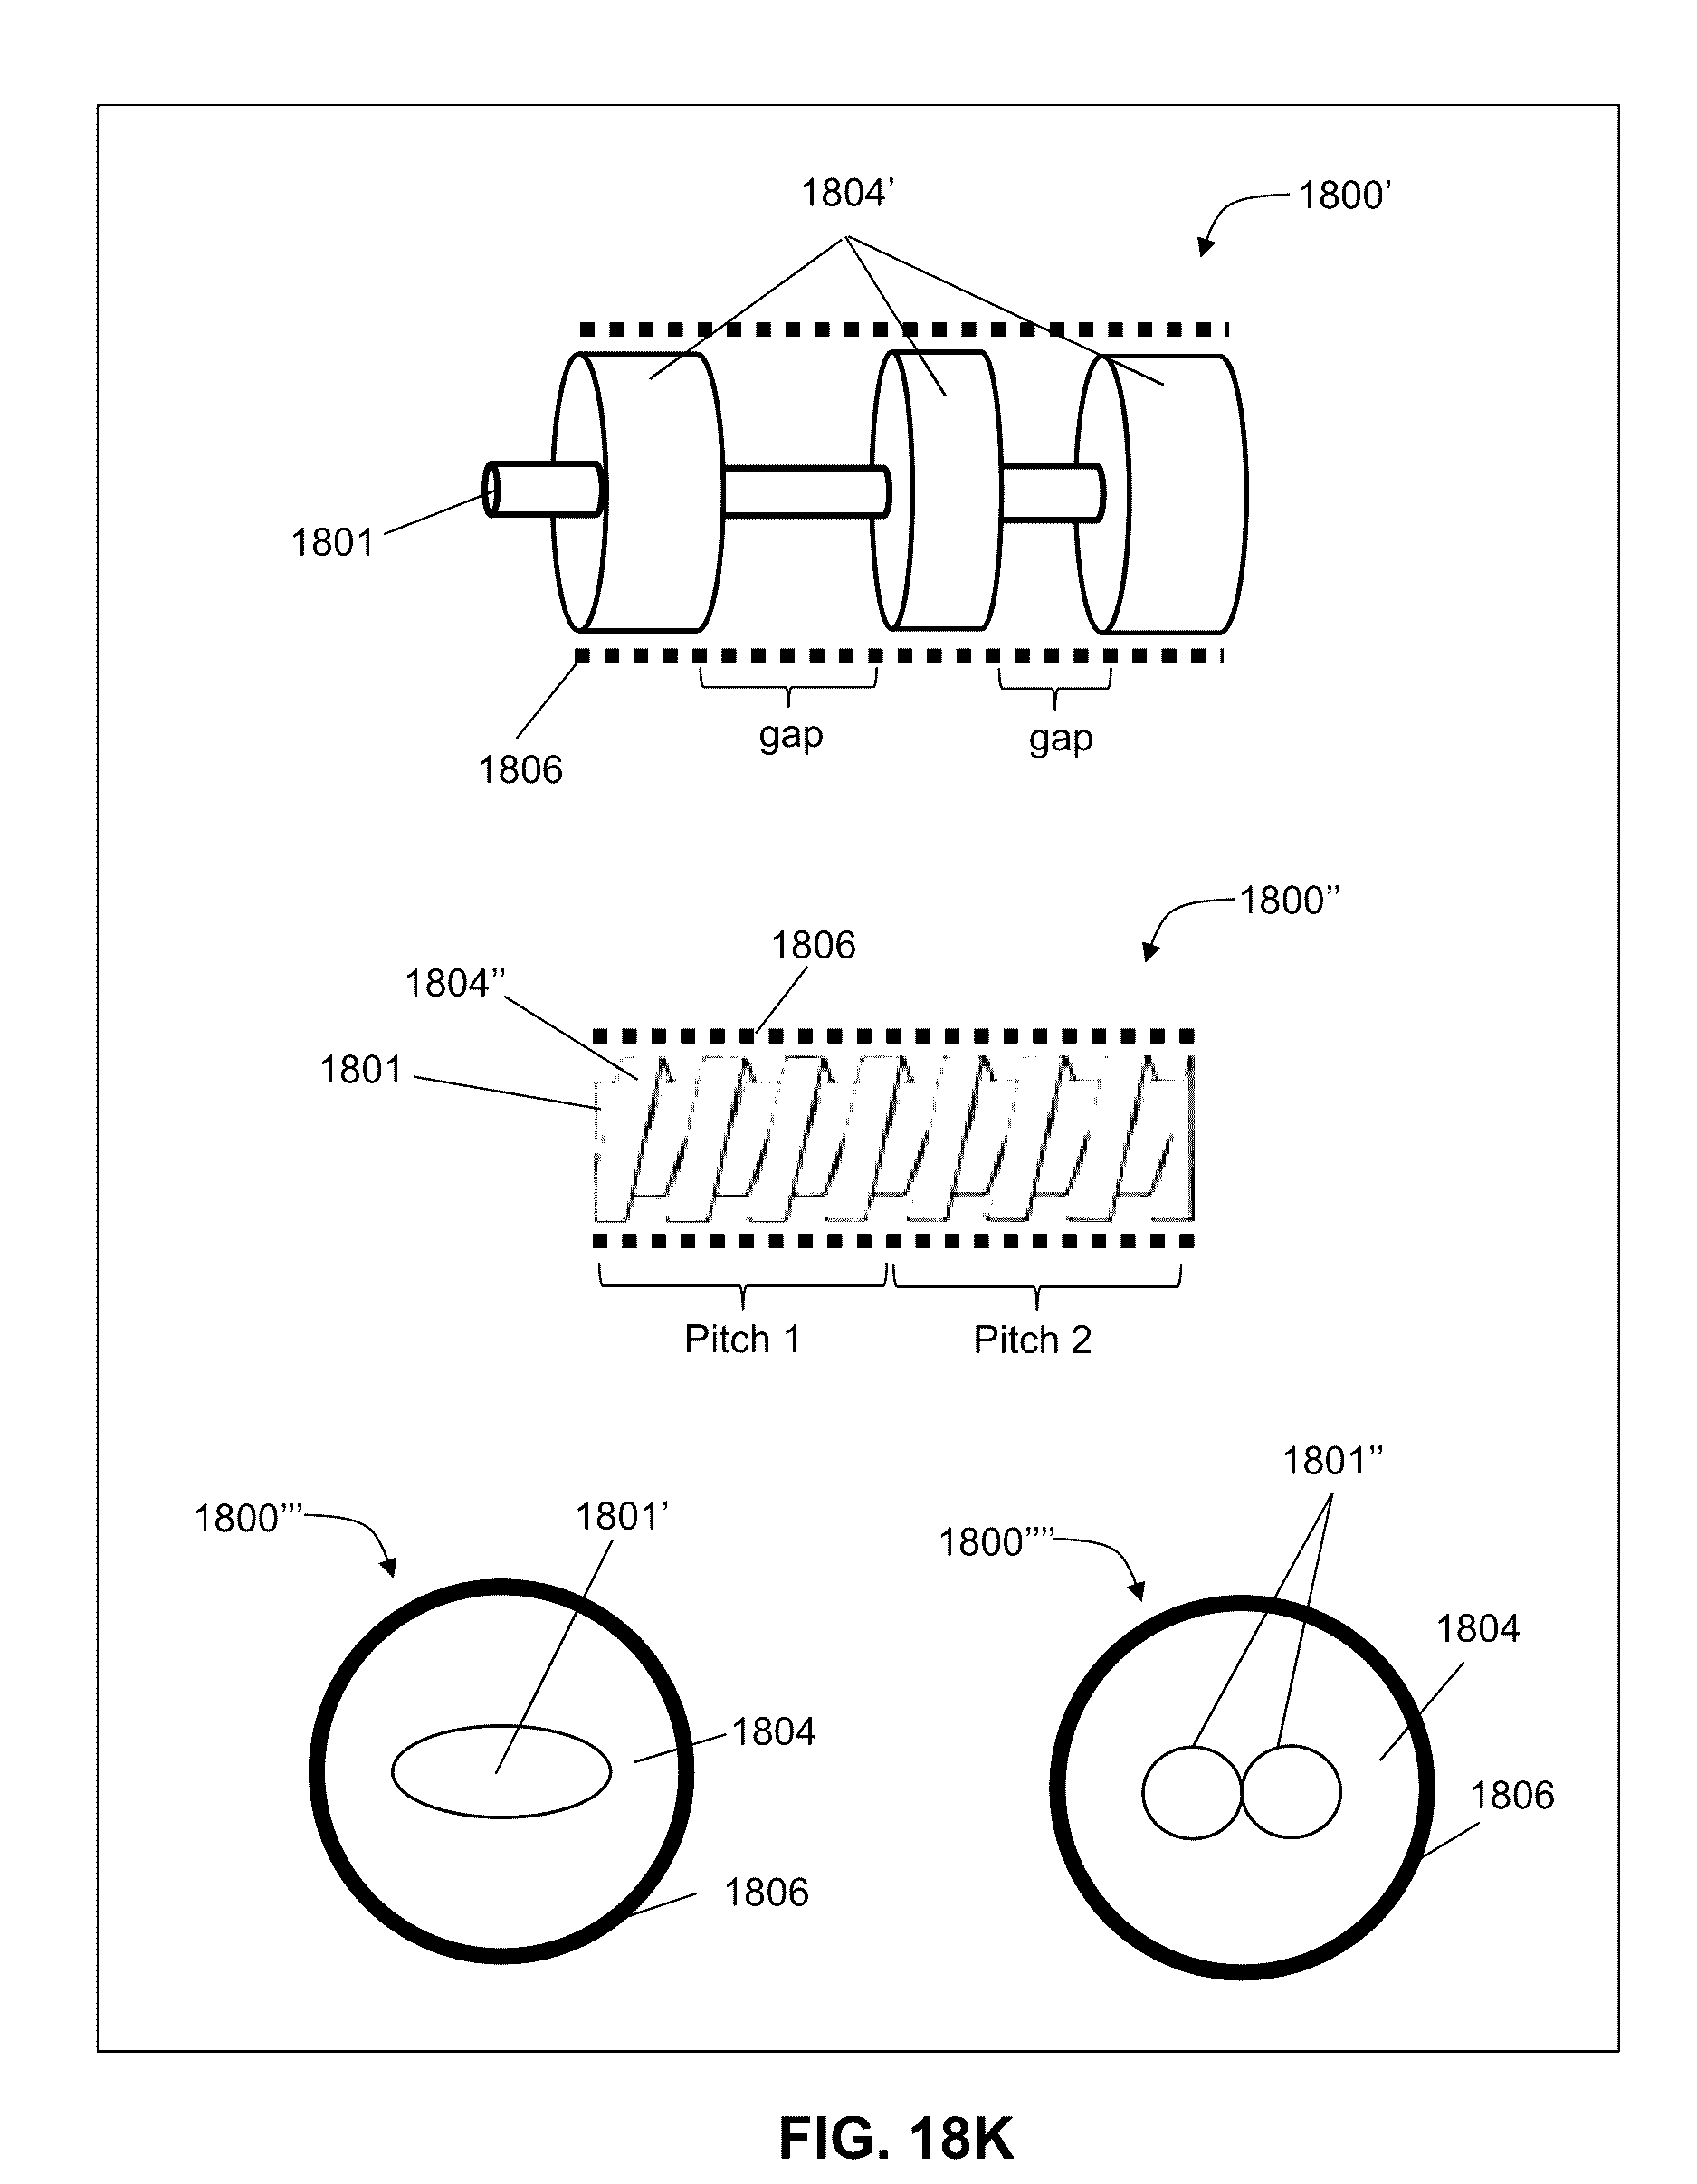 Us9628116b2 apparatus and methods for transmitting wireless signals patents